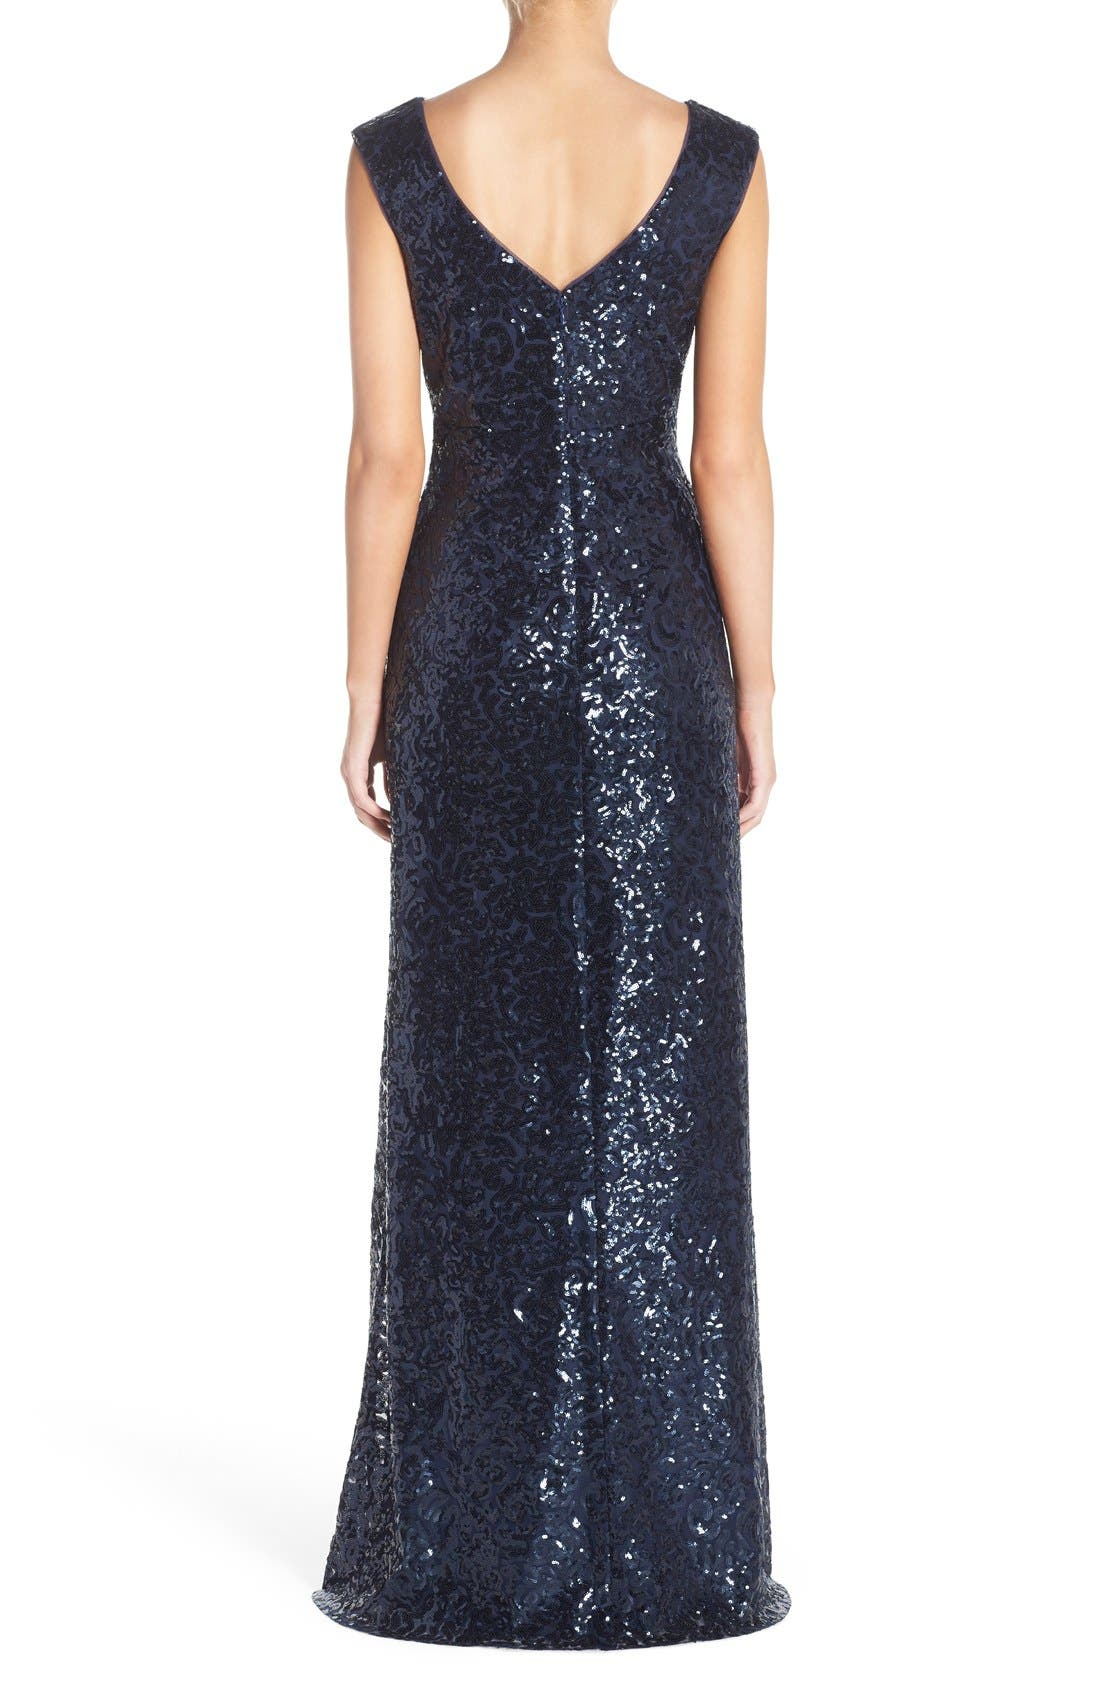 Alternate Image 2  - Donna Morgan 'Evie' Sequin Bateau Neck A-Line Gown